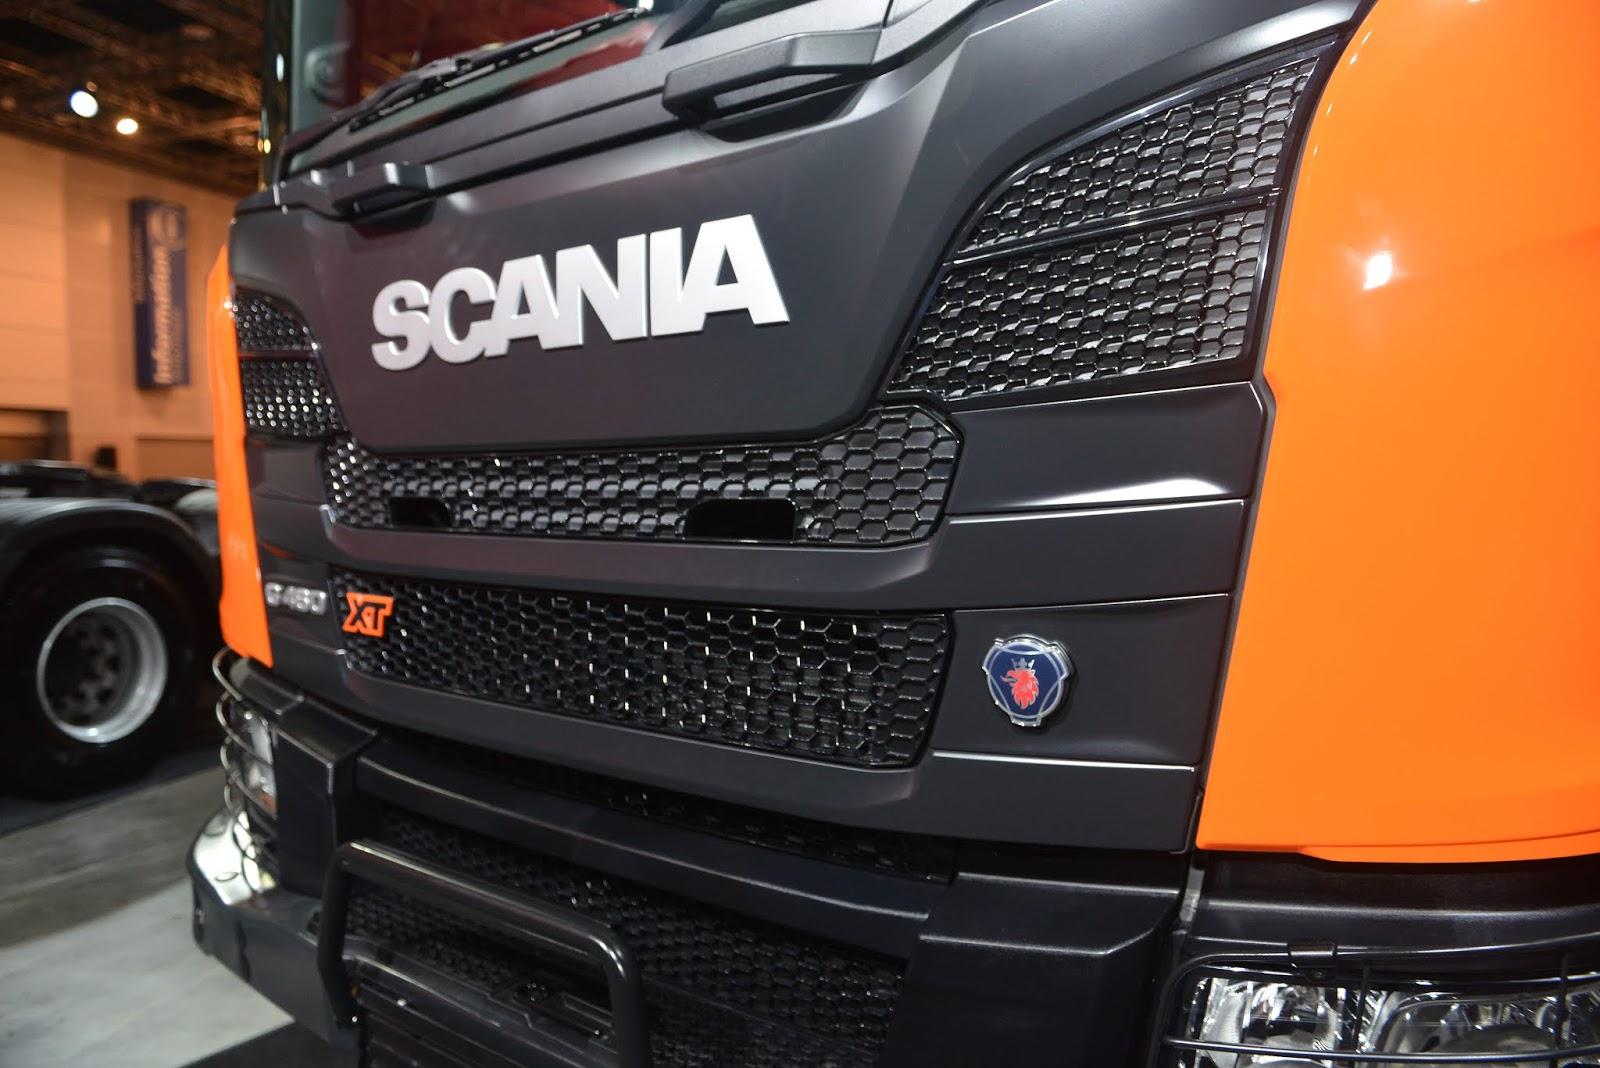 Motoring-Malaysia: Scania Launches their Award Winning New